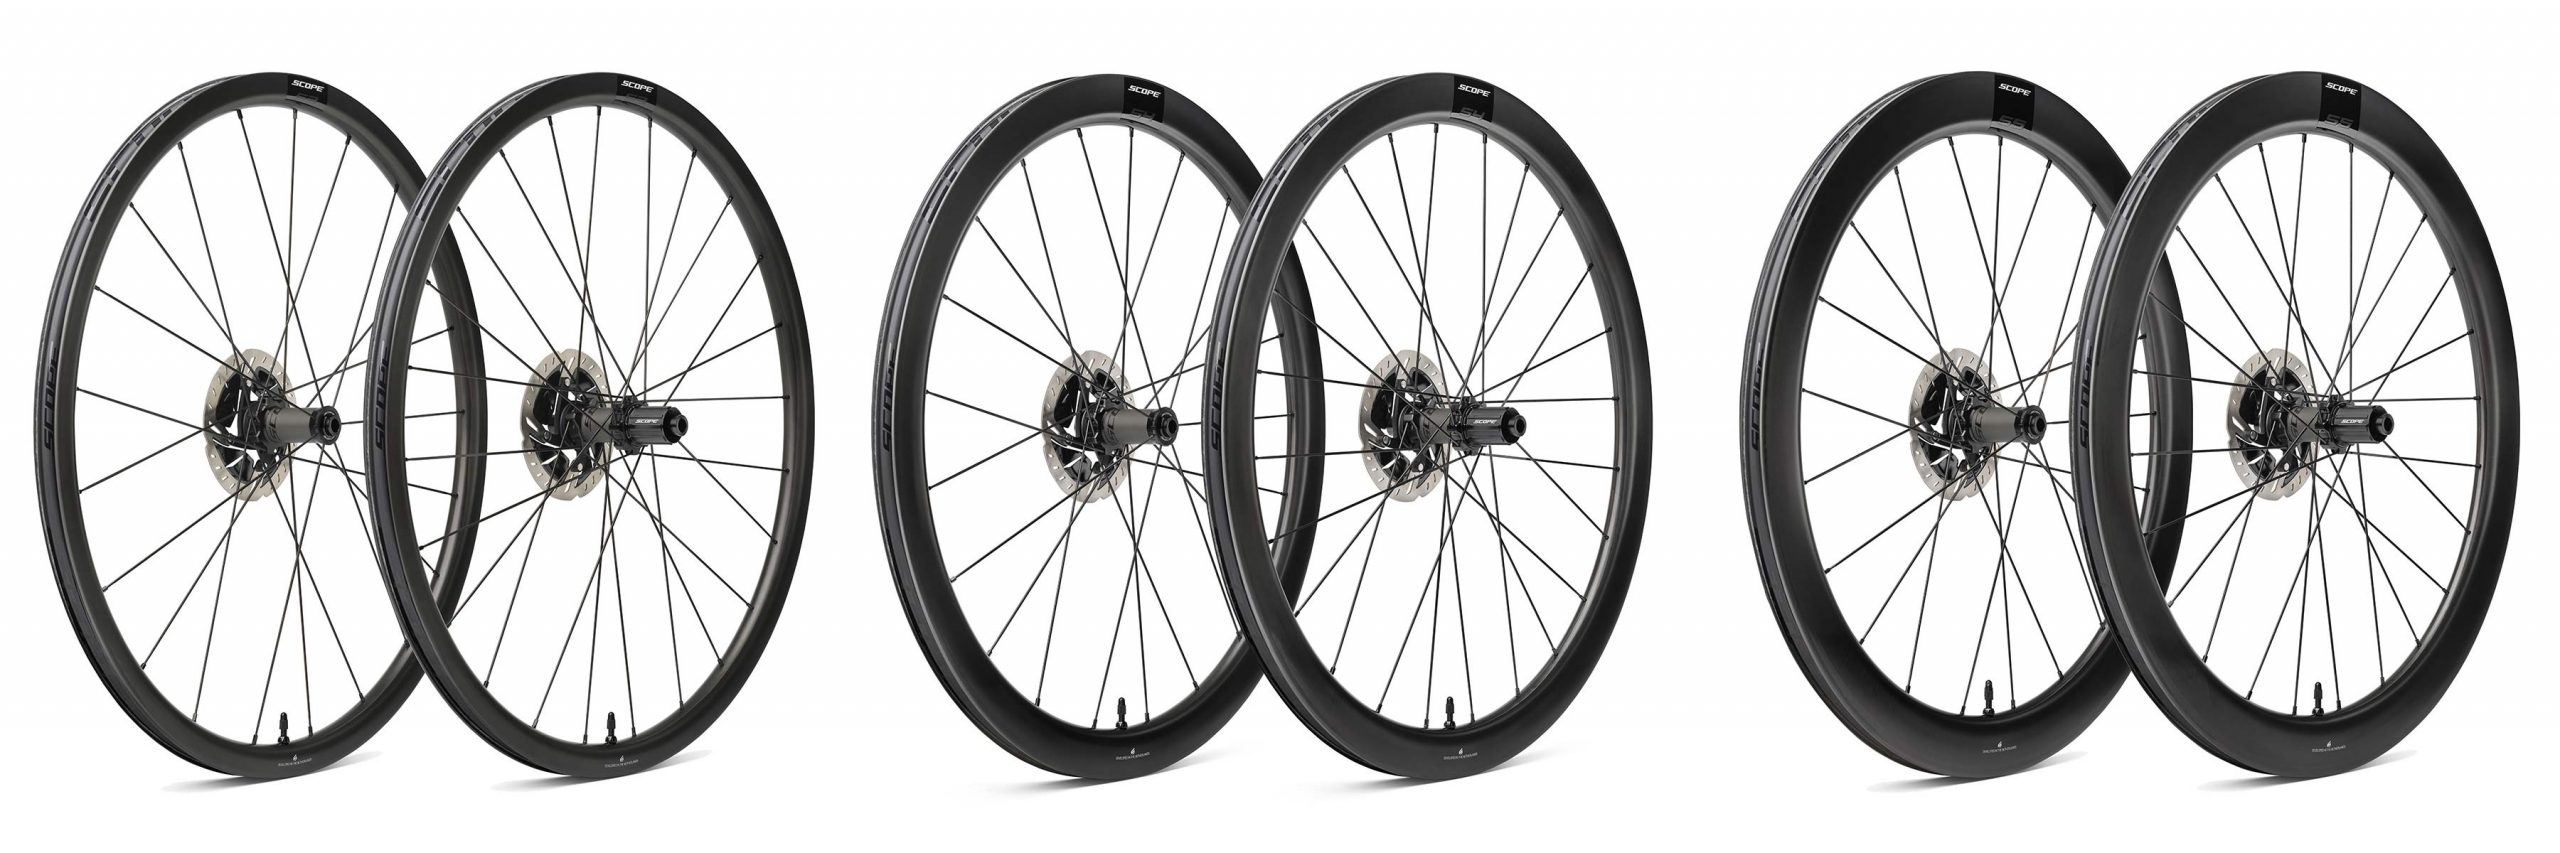 Scope Sport S3 S4 S5 affordable carbon tubeless road wheels, 998€ for disc brakes